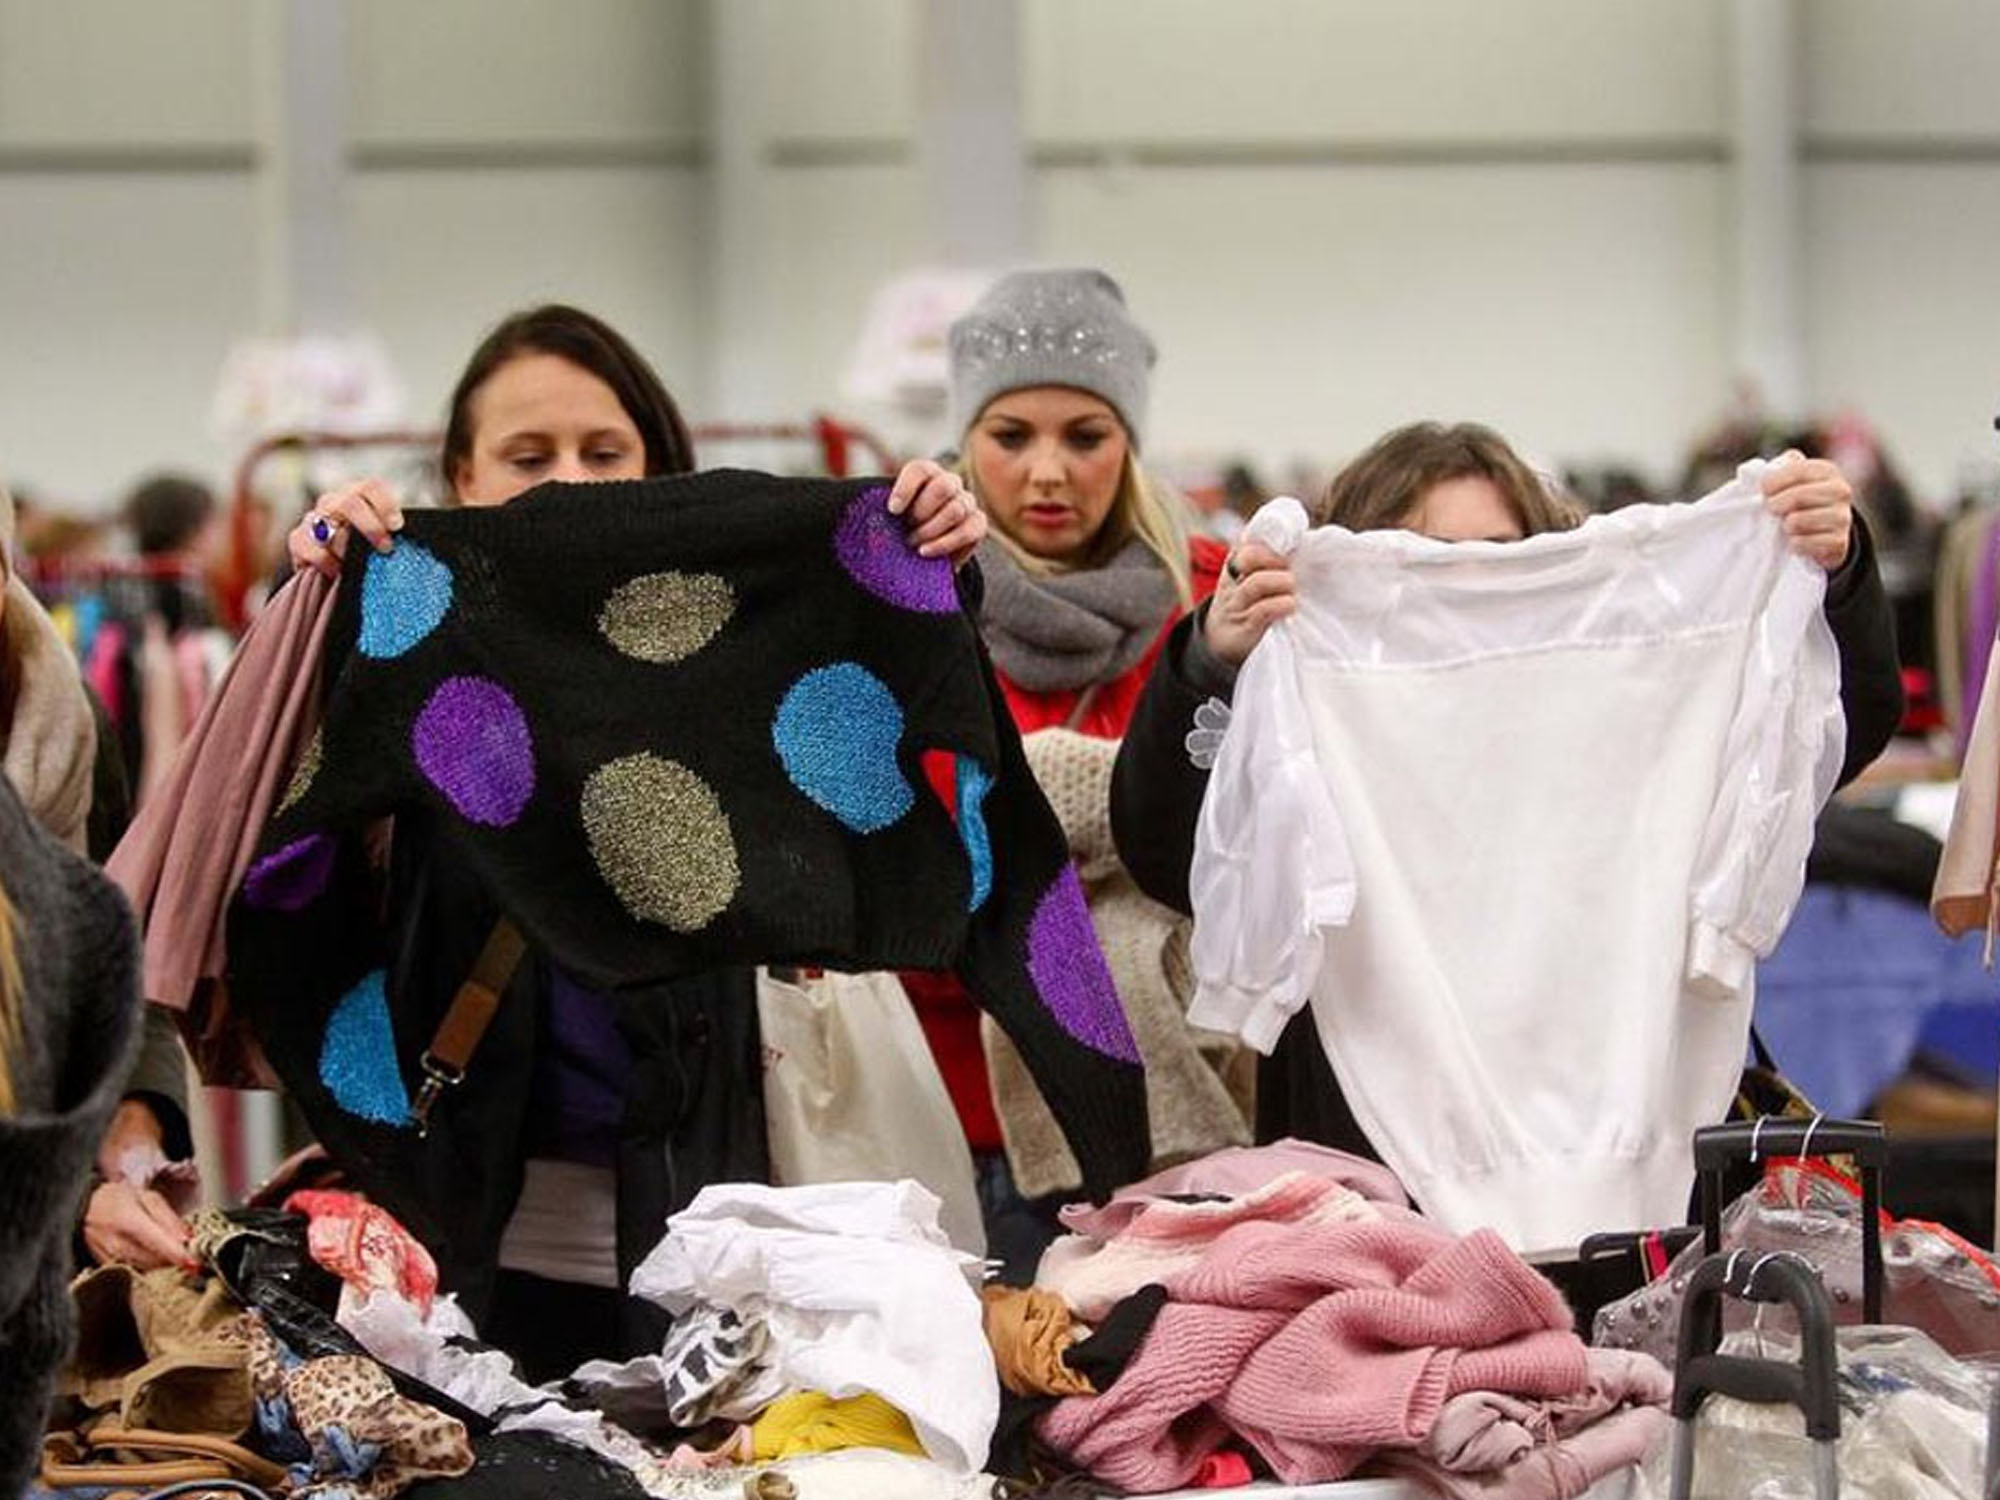 Ladyfashion Flohmarkt in der Messe Chemnitz